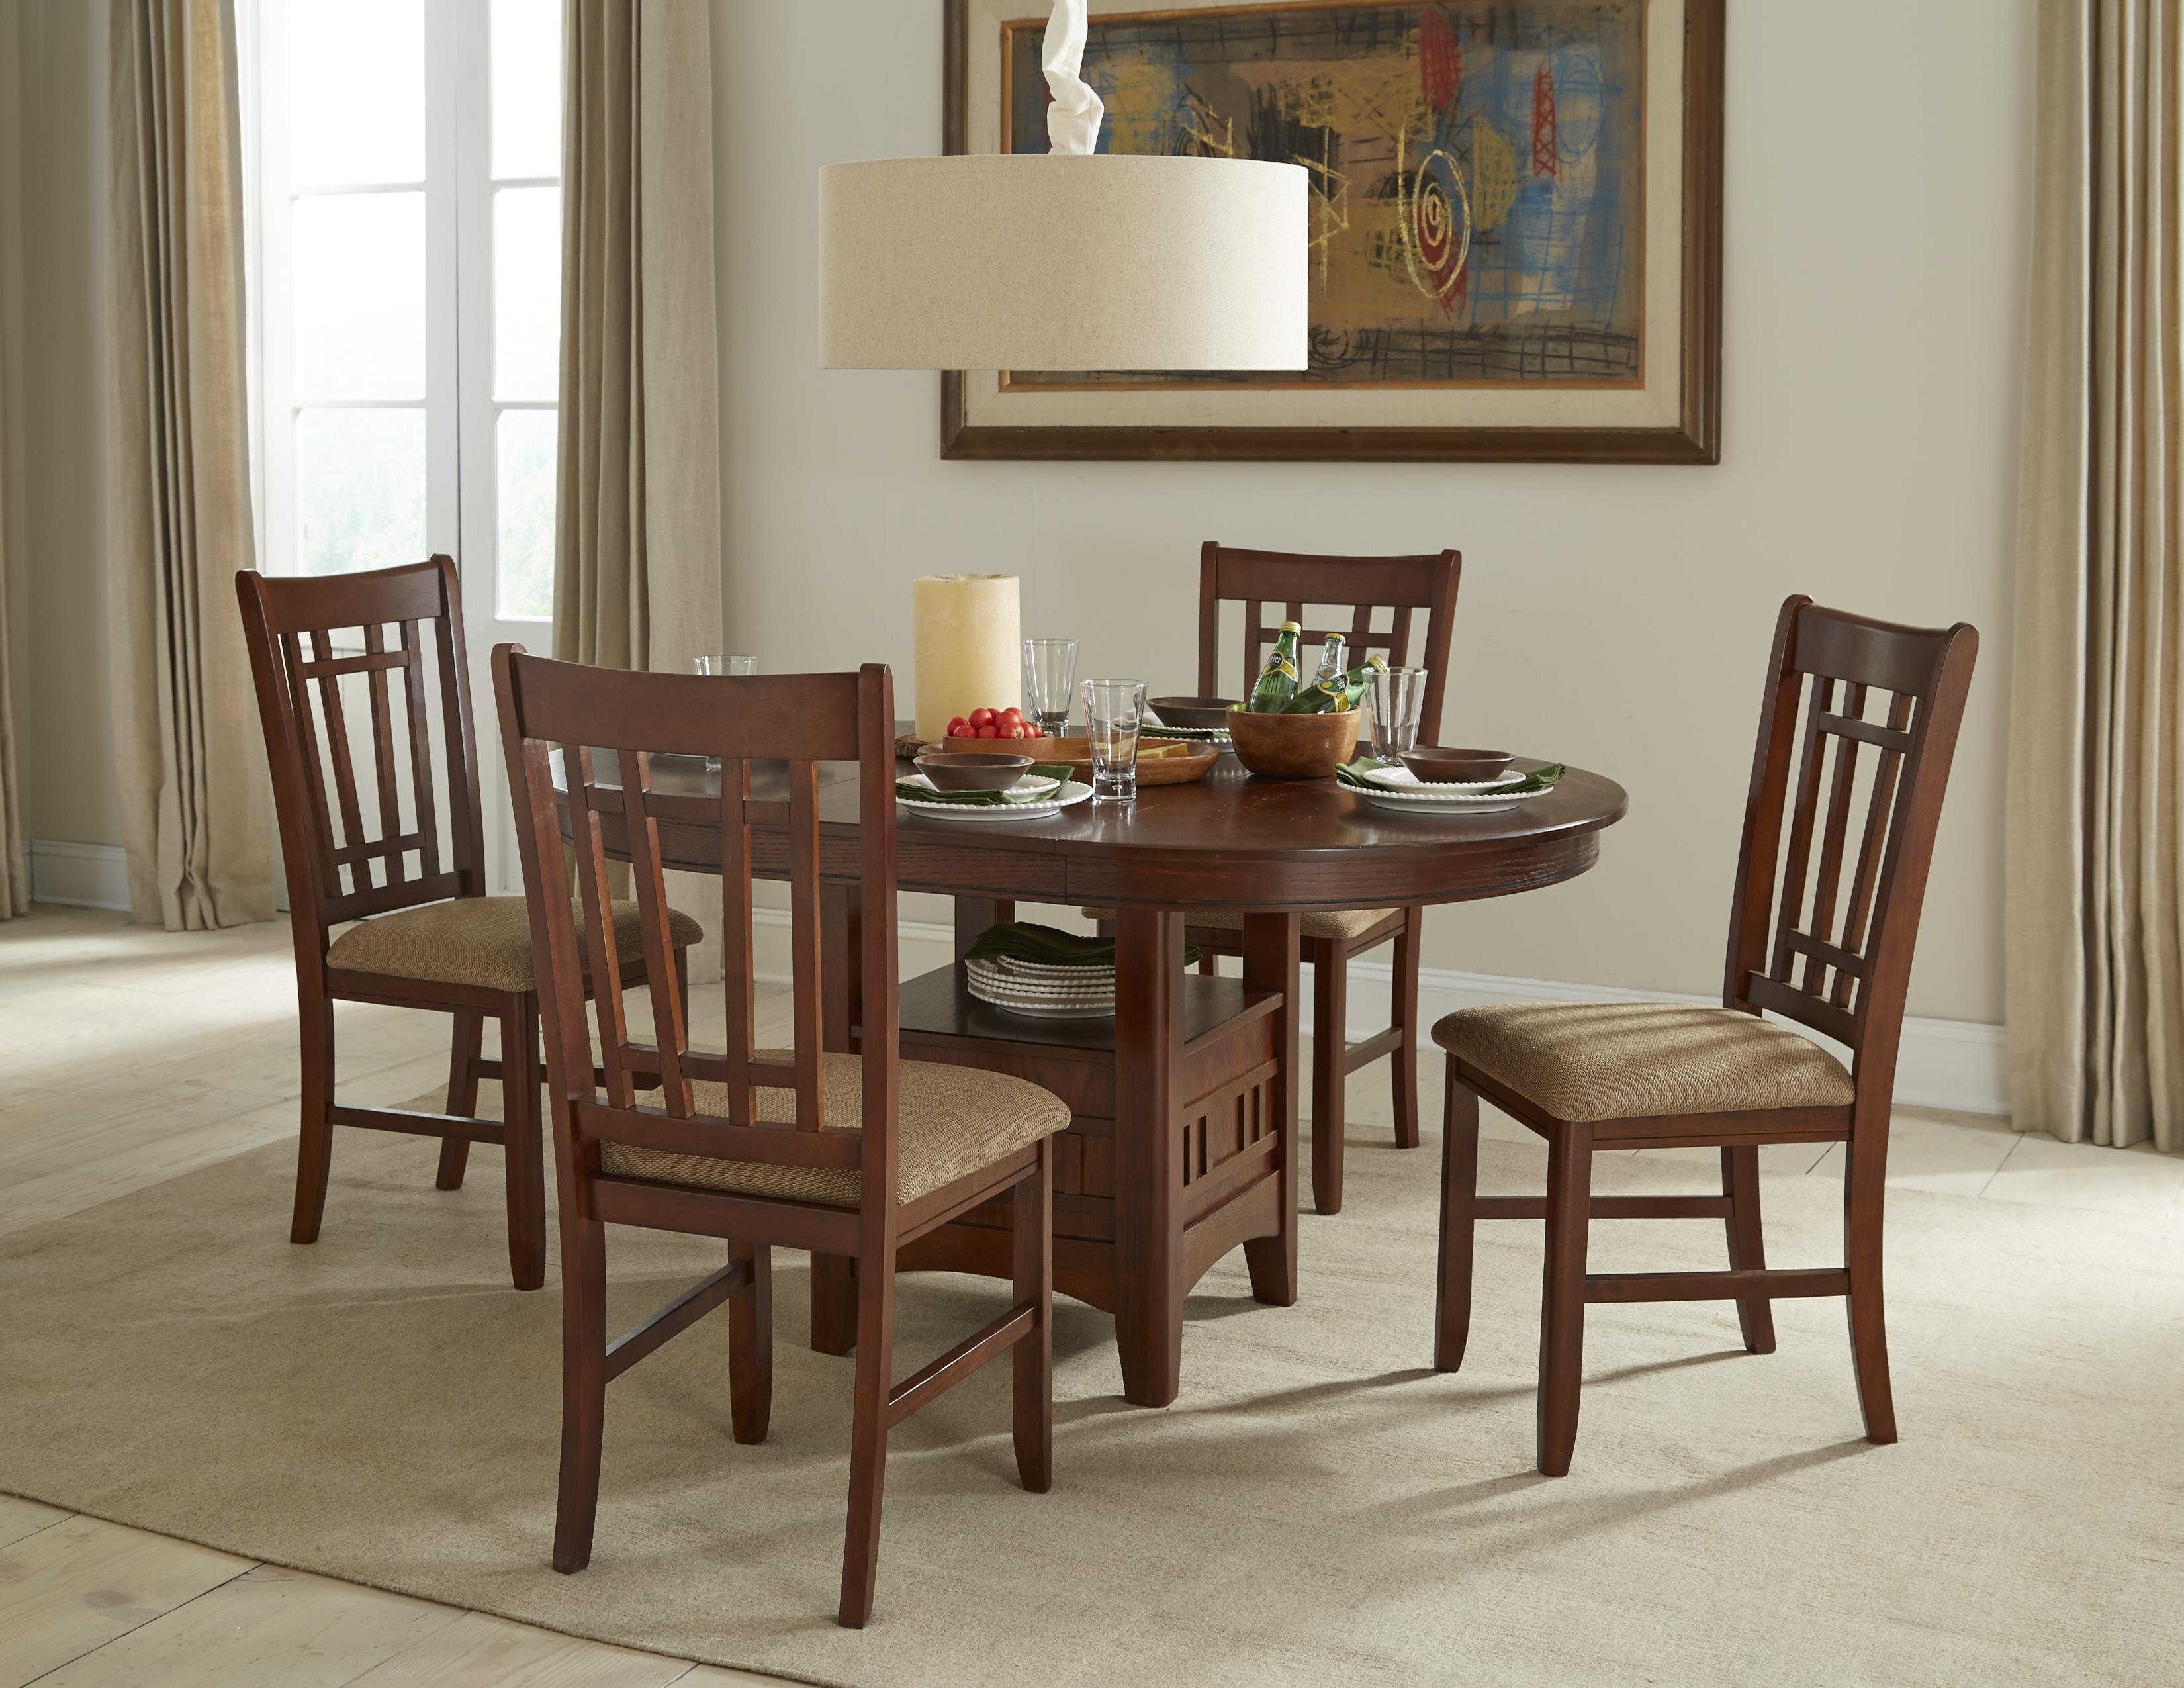 Intercon Mission Casuals Oval Dining Table Set with Cushioned Side Chairs | Wayside Furniture | Dining 5 Piece Set & Intercon Mission Casuals Oval Dining Table Set with Cushioned Side ...